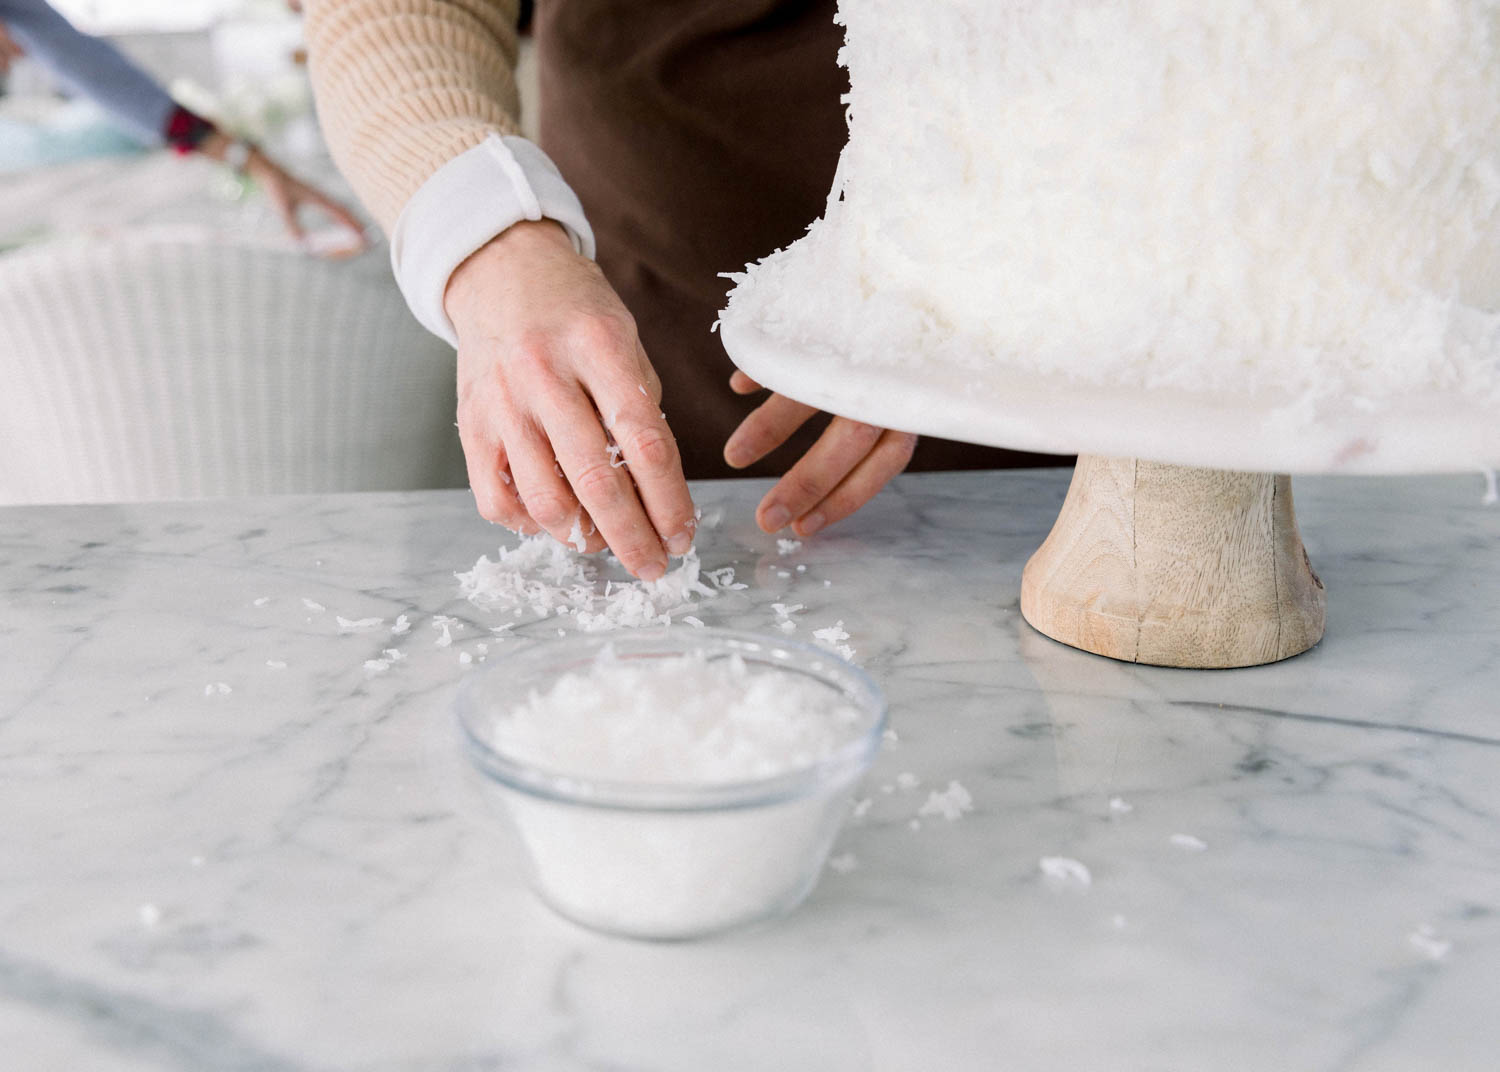 Preparing a coconut cake